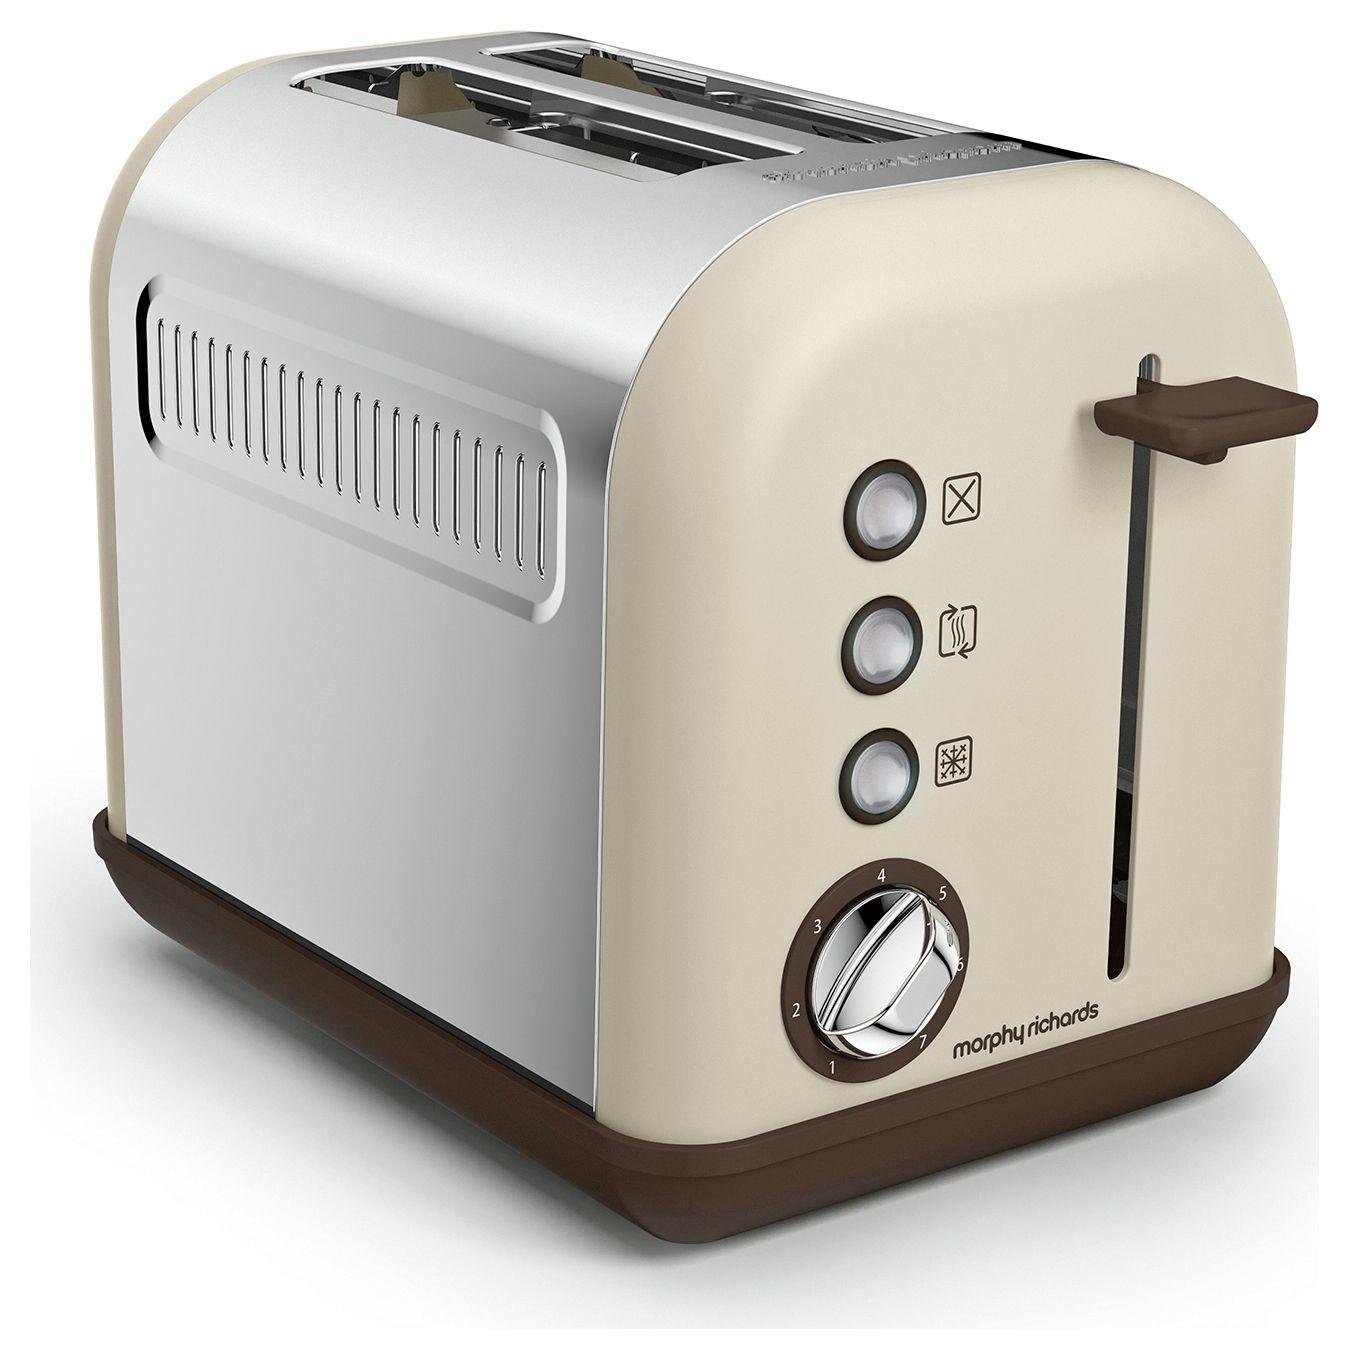 morphy richards toaster accents 2 slice sand. Black Bedroom Furniture Sets. Home Design Ideas